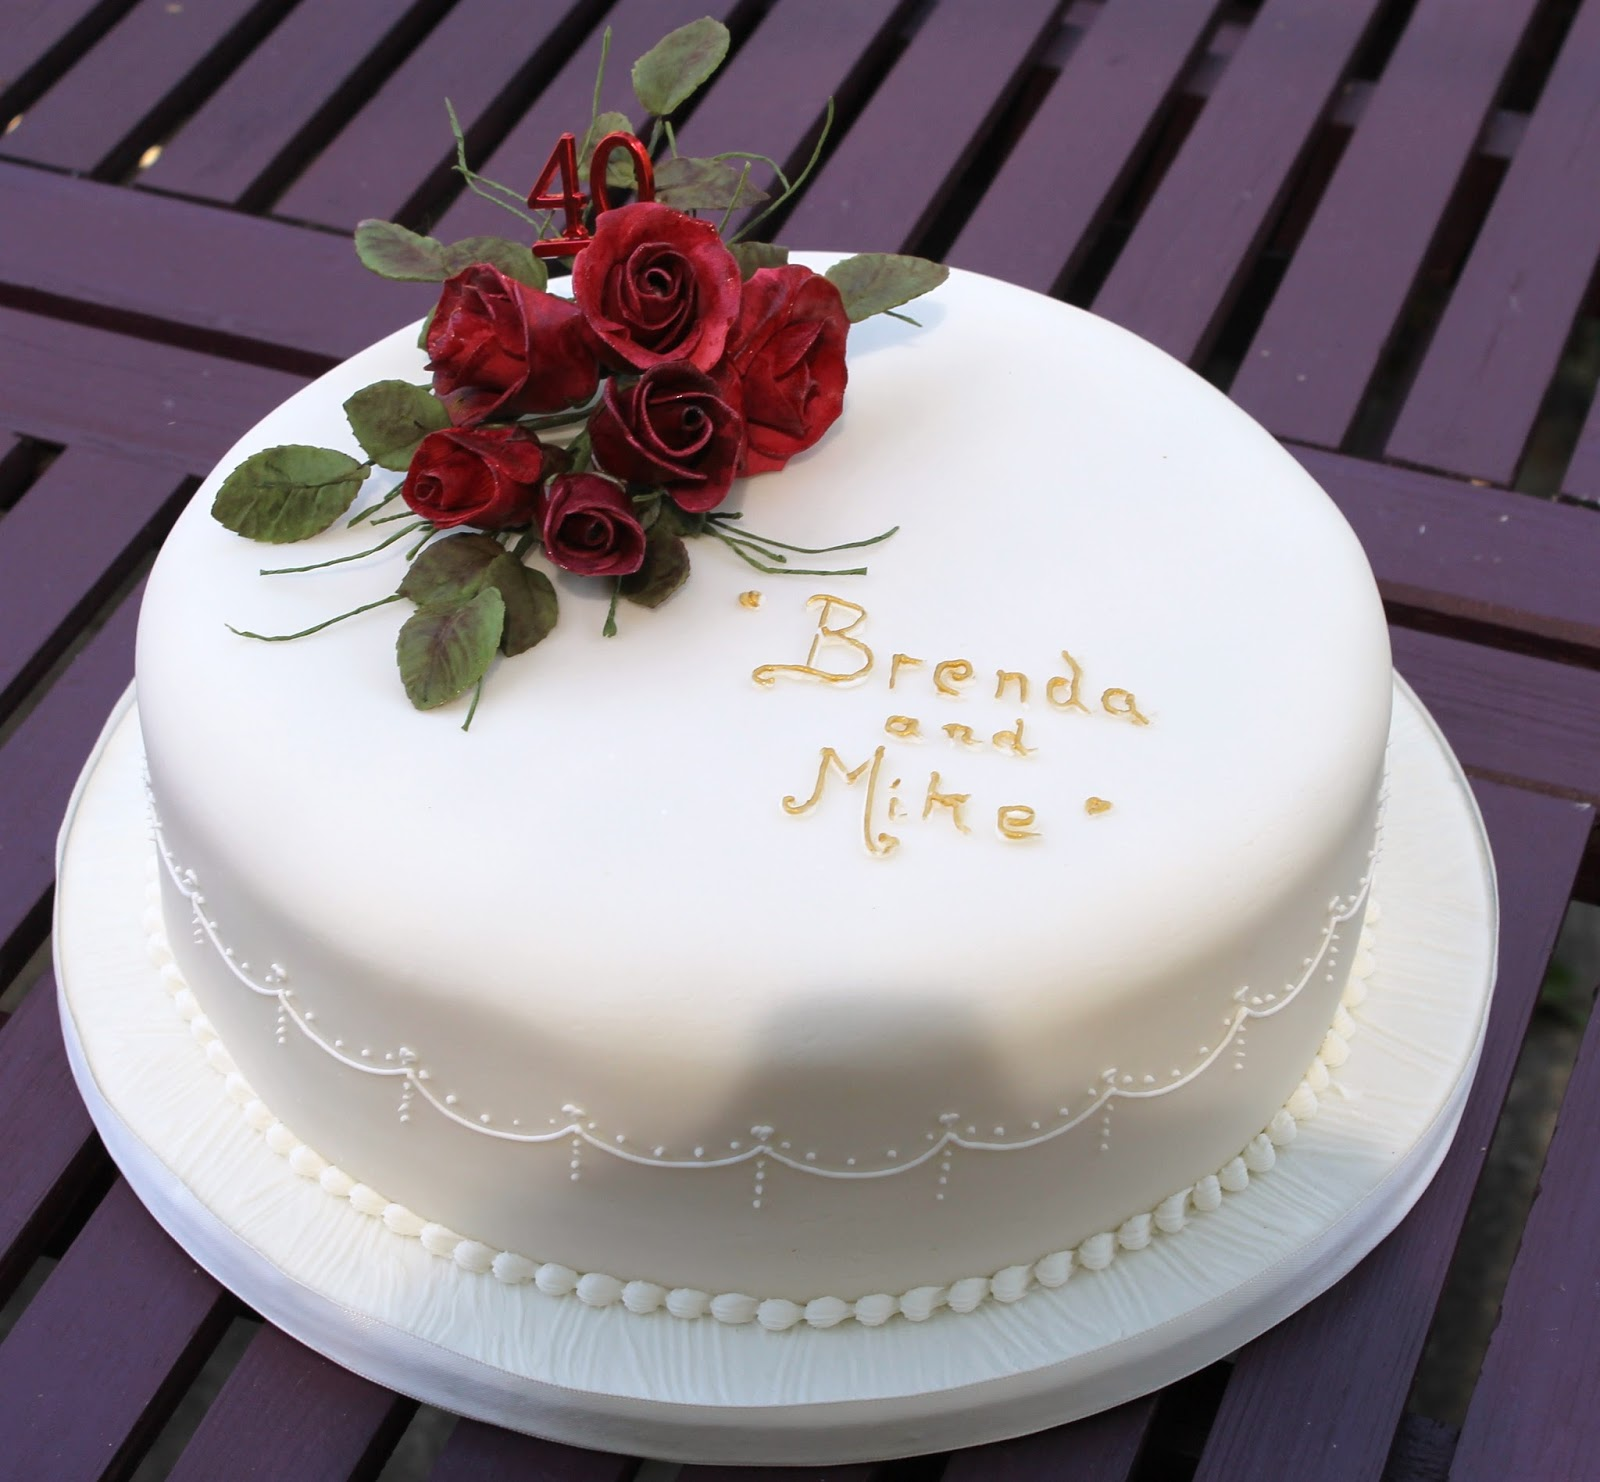 Rich fruit cake with sugrpaste and sugar roses and leaves